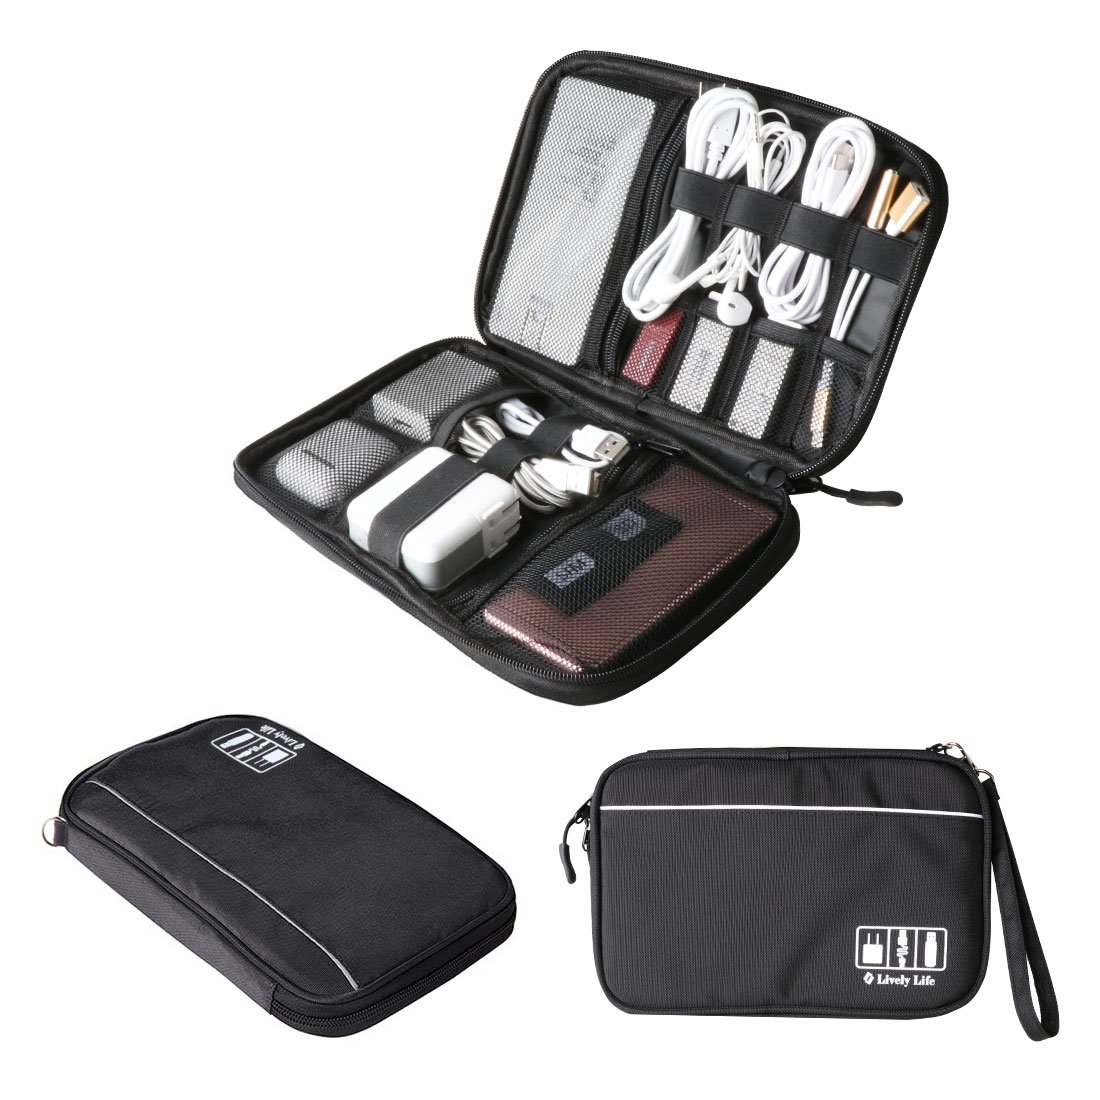 Electronics Accessories Storage Bag, Lively Life Electronics Accessories Cases Travel Universal Cable Organizer with SD SIM Card Slots for Various USB, Phone, Charger and Cable Black